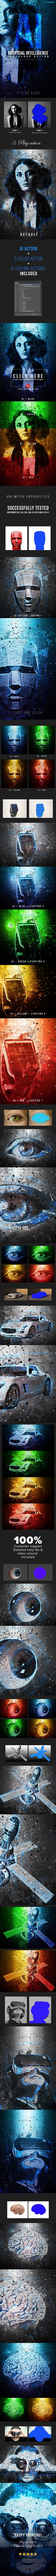 AI Artificial Intelligence Photoshop Action - Photo Effects Actions Sketch Photoshop, Photoshop Photos, Photoshop Design, Photoshop Photography, Camera Photography, Photoshop Tutorial, Effects Photoshop, Photoshop Actions, Ai Artificial Intelligence